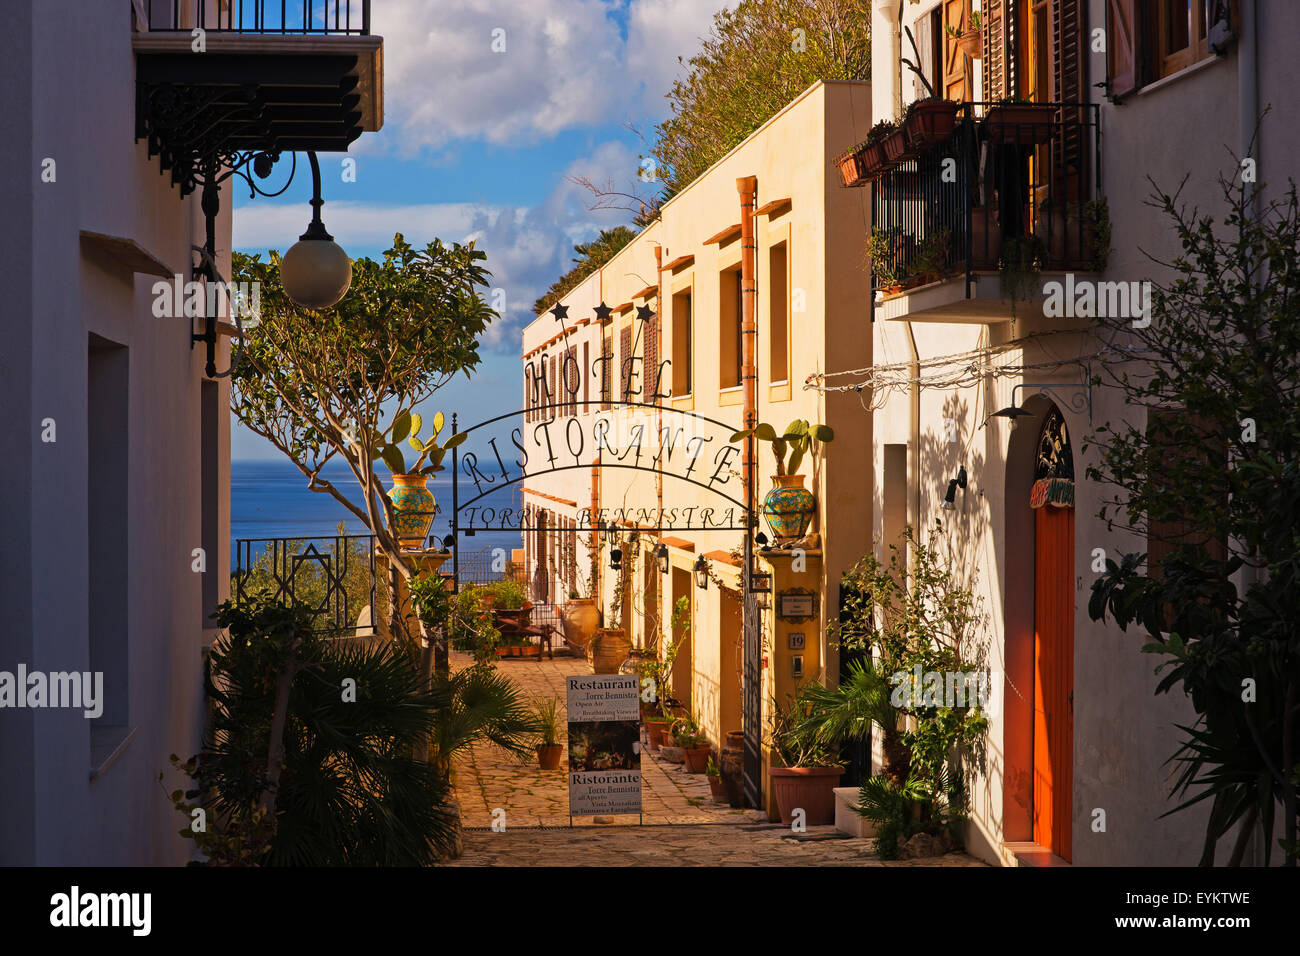 Mise en page de l'hôtel dans la région de Scopello, Sicile, Italie, Photo Stock